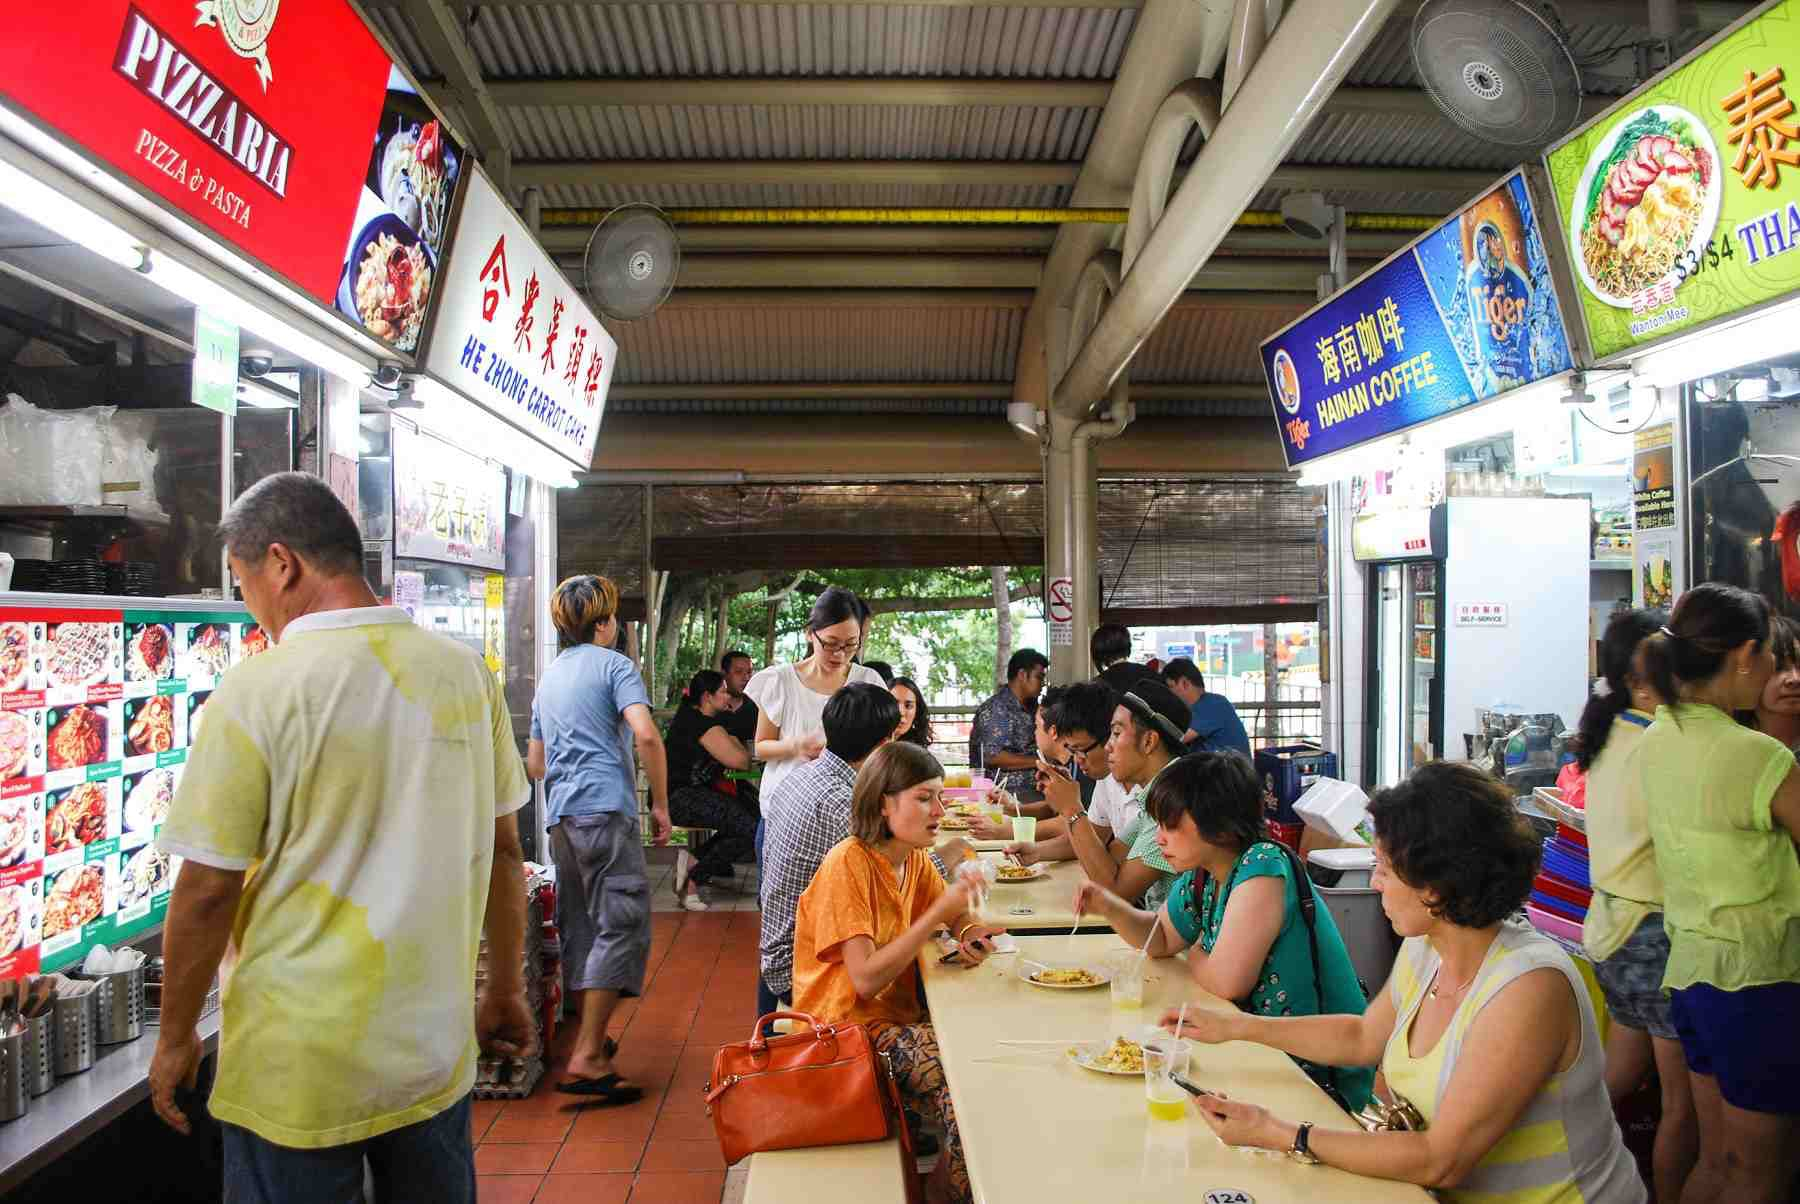 Bukit Timah Food Centre can satisfy any heartland craving, as well as fresh produce needs. 99.co.